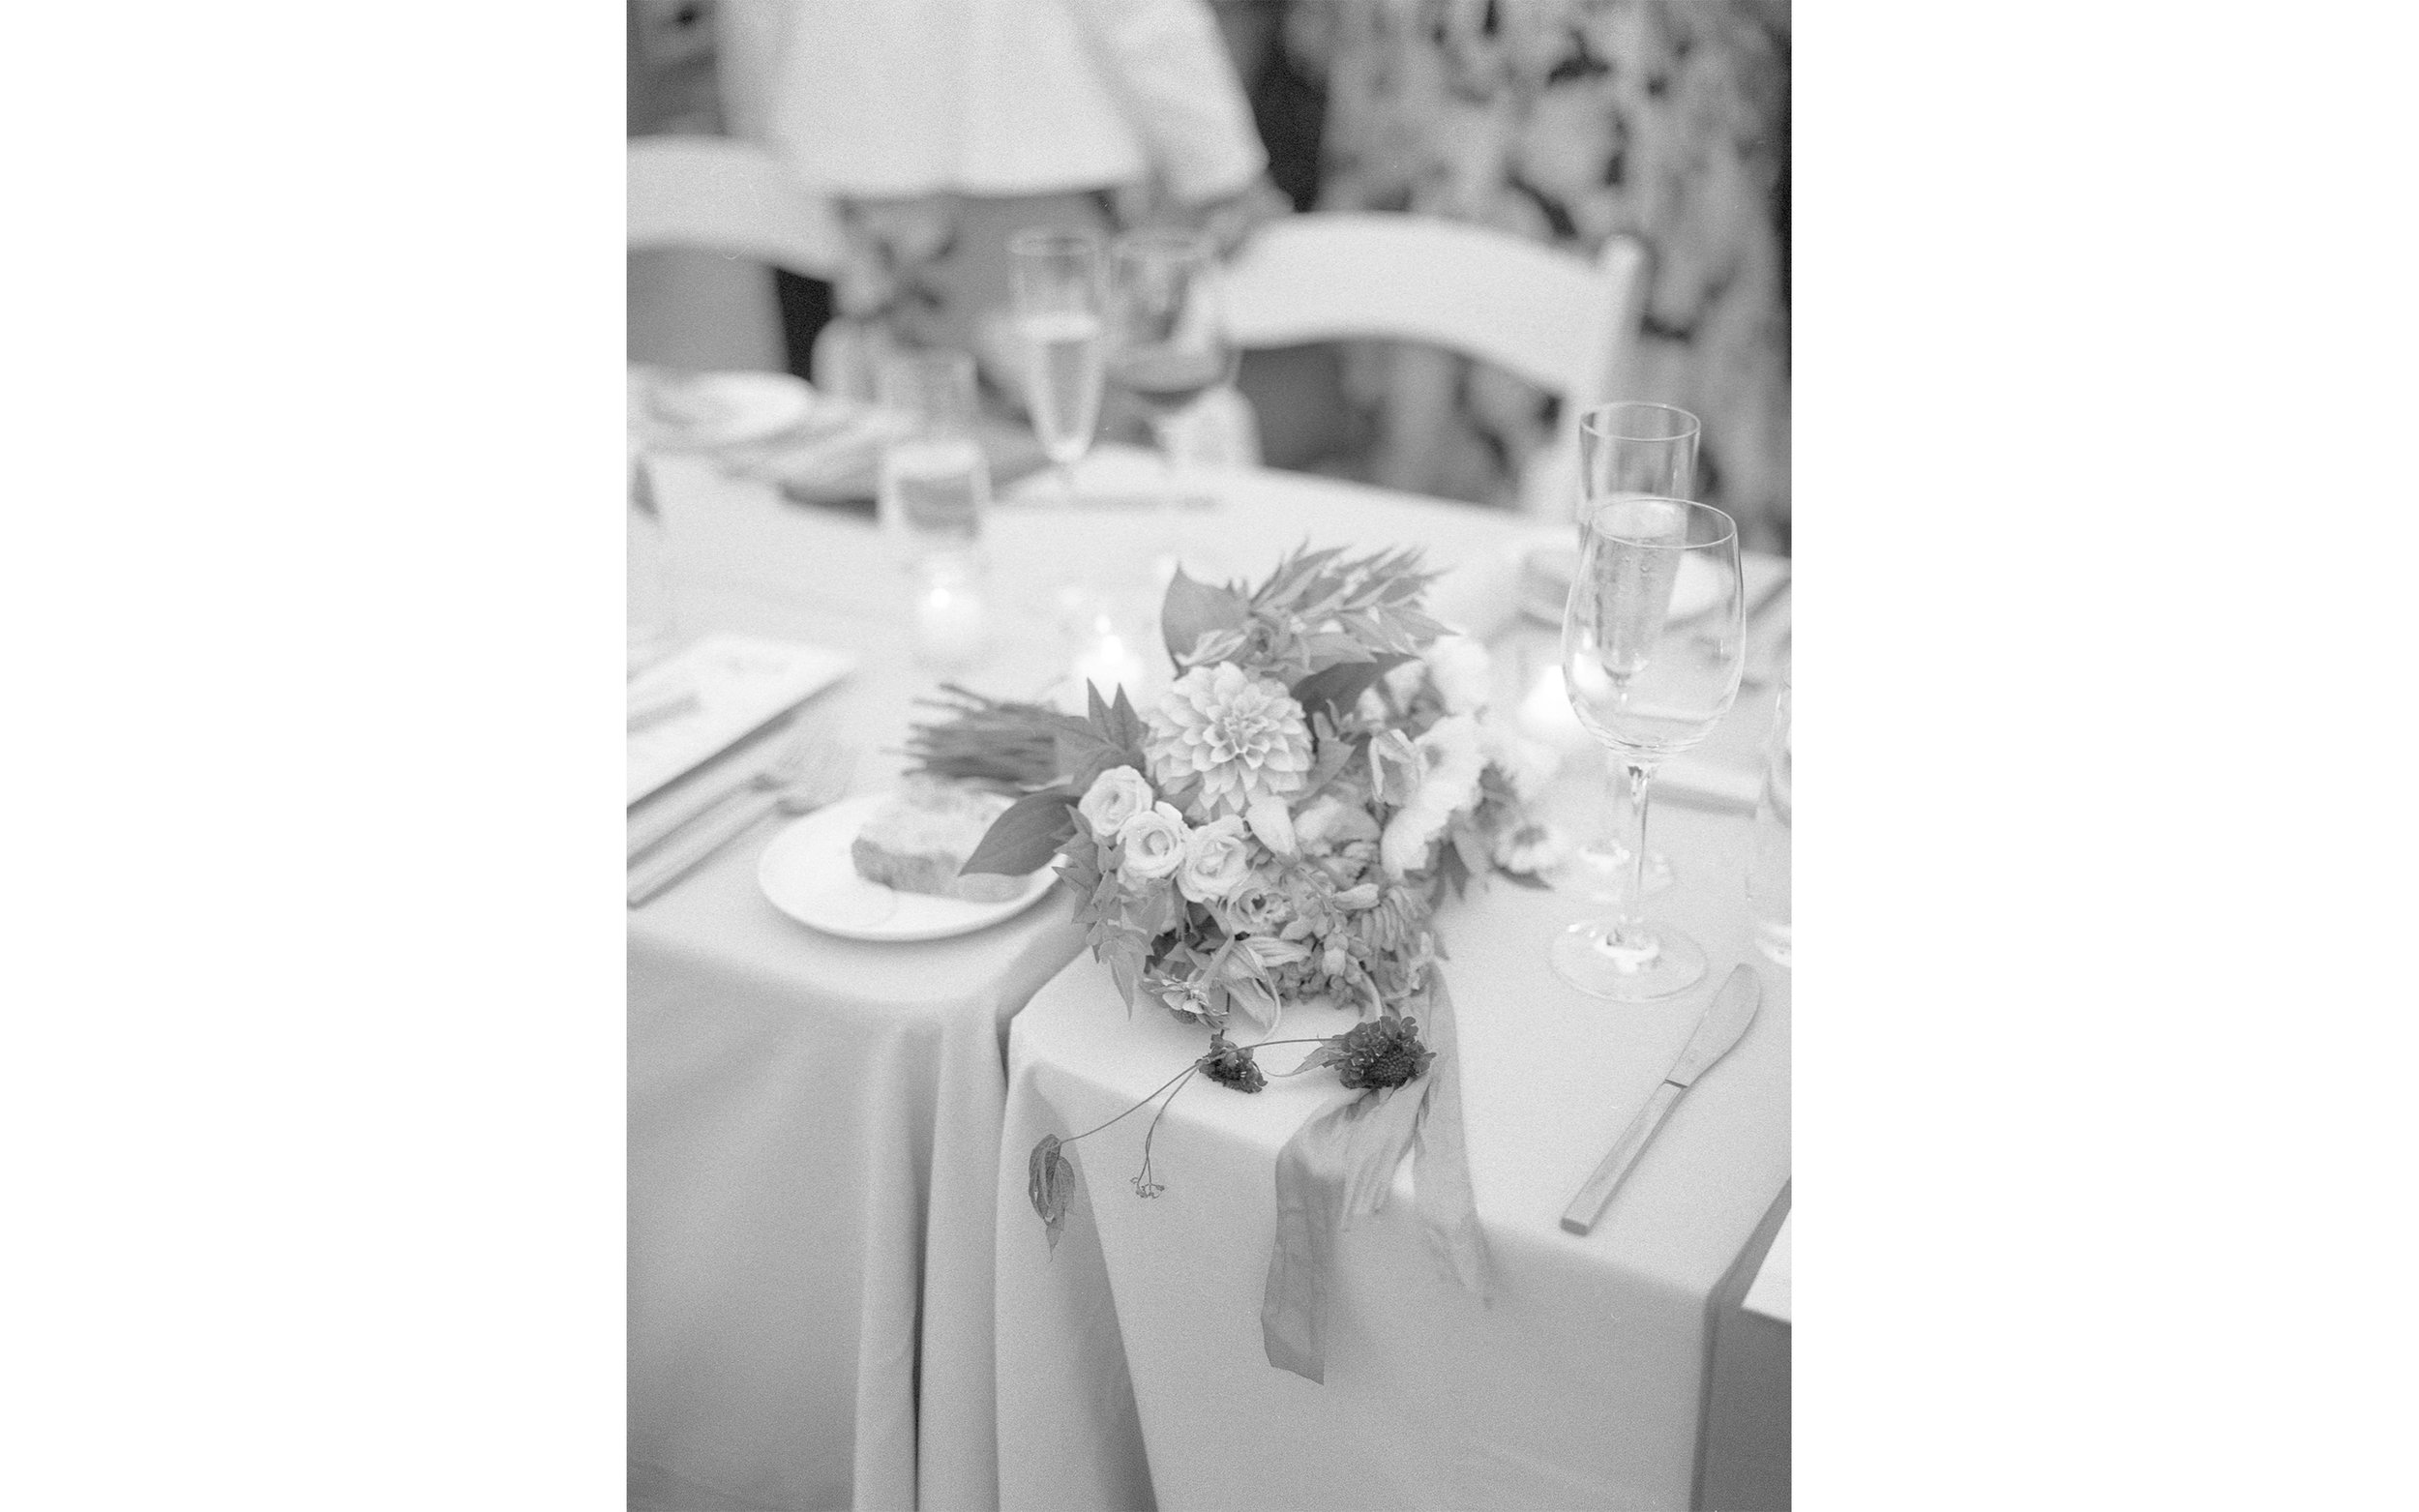 Berkshires Wedding Fine Art Wedding Photographer_Meg Haley Photographs_045.jpg